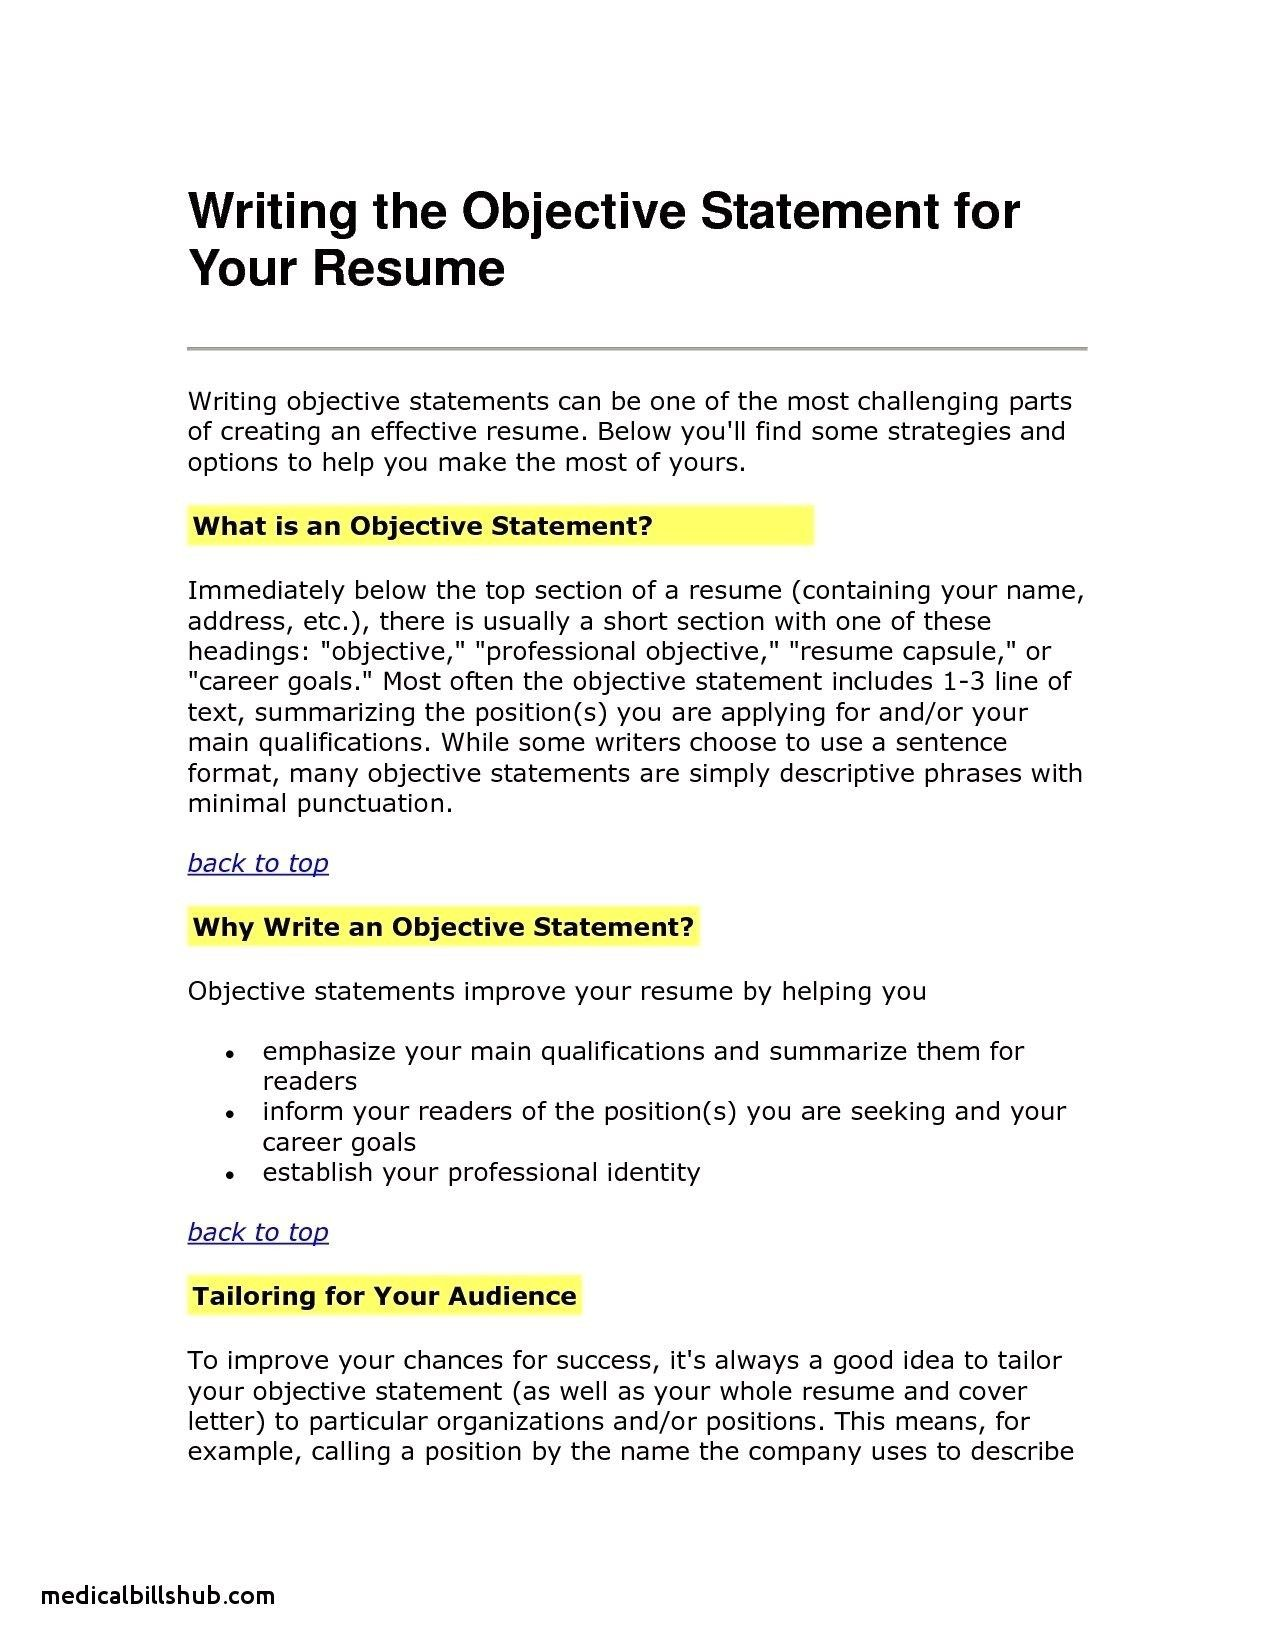 Download Fresh Cover Letters For Academic Jobs Lettersample